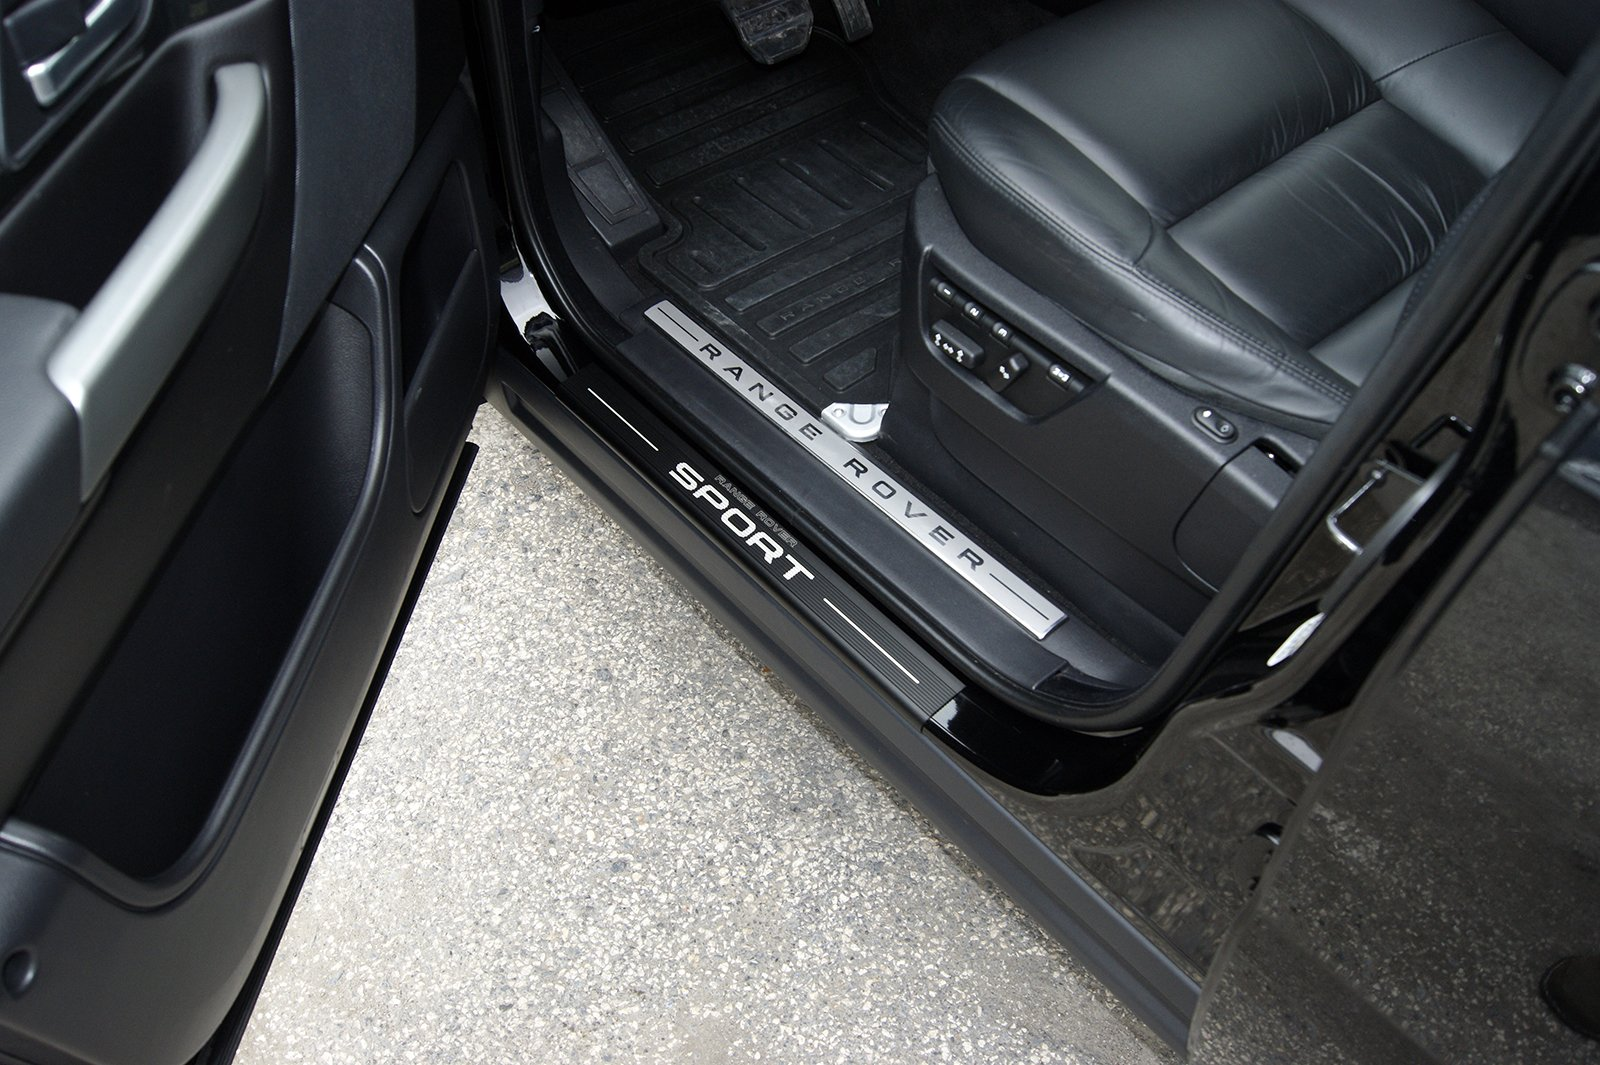 BARMECA Range Rover Sport 2005-2013 Door Sill Covers Set of 4 by BARMECA (Image #3)